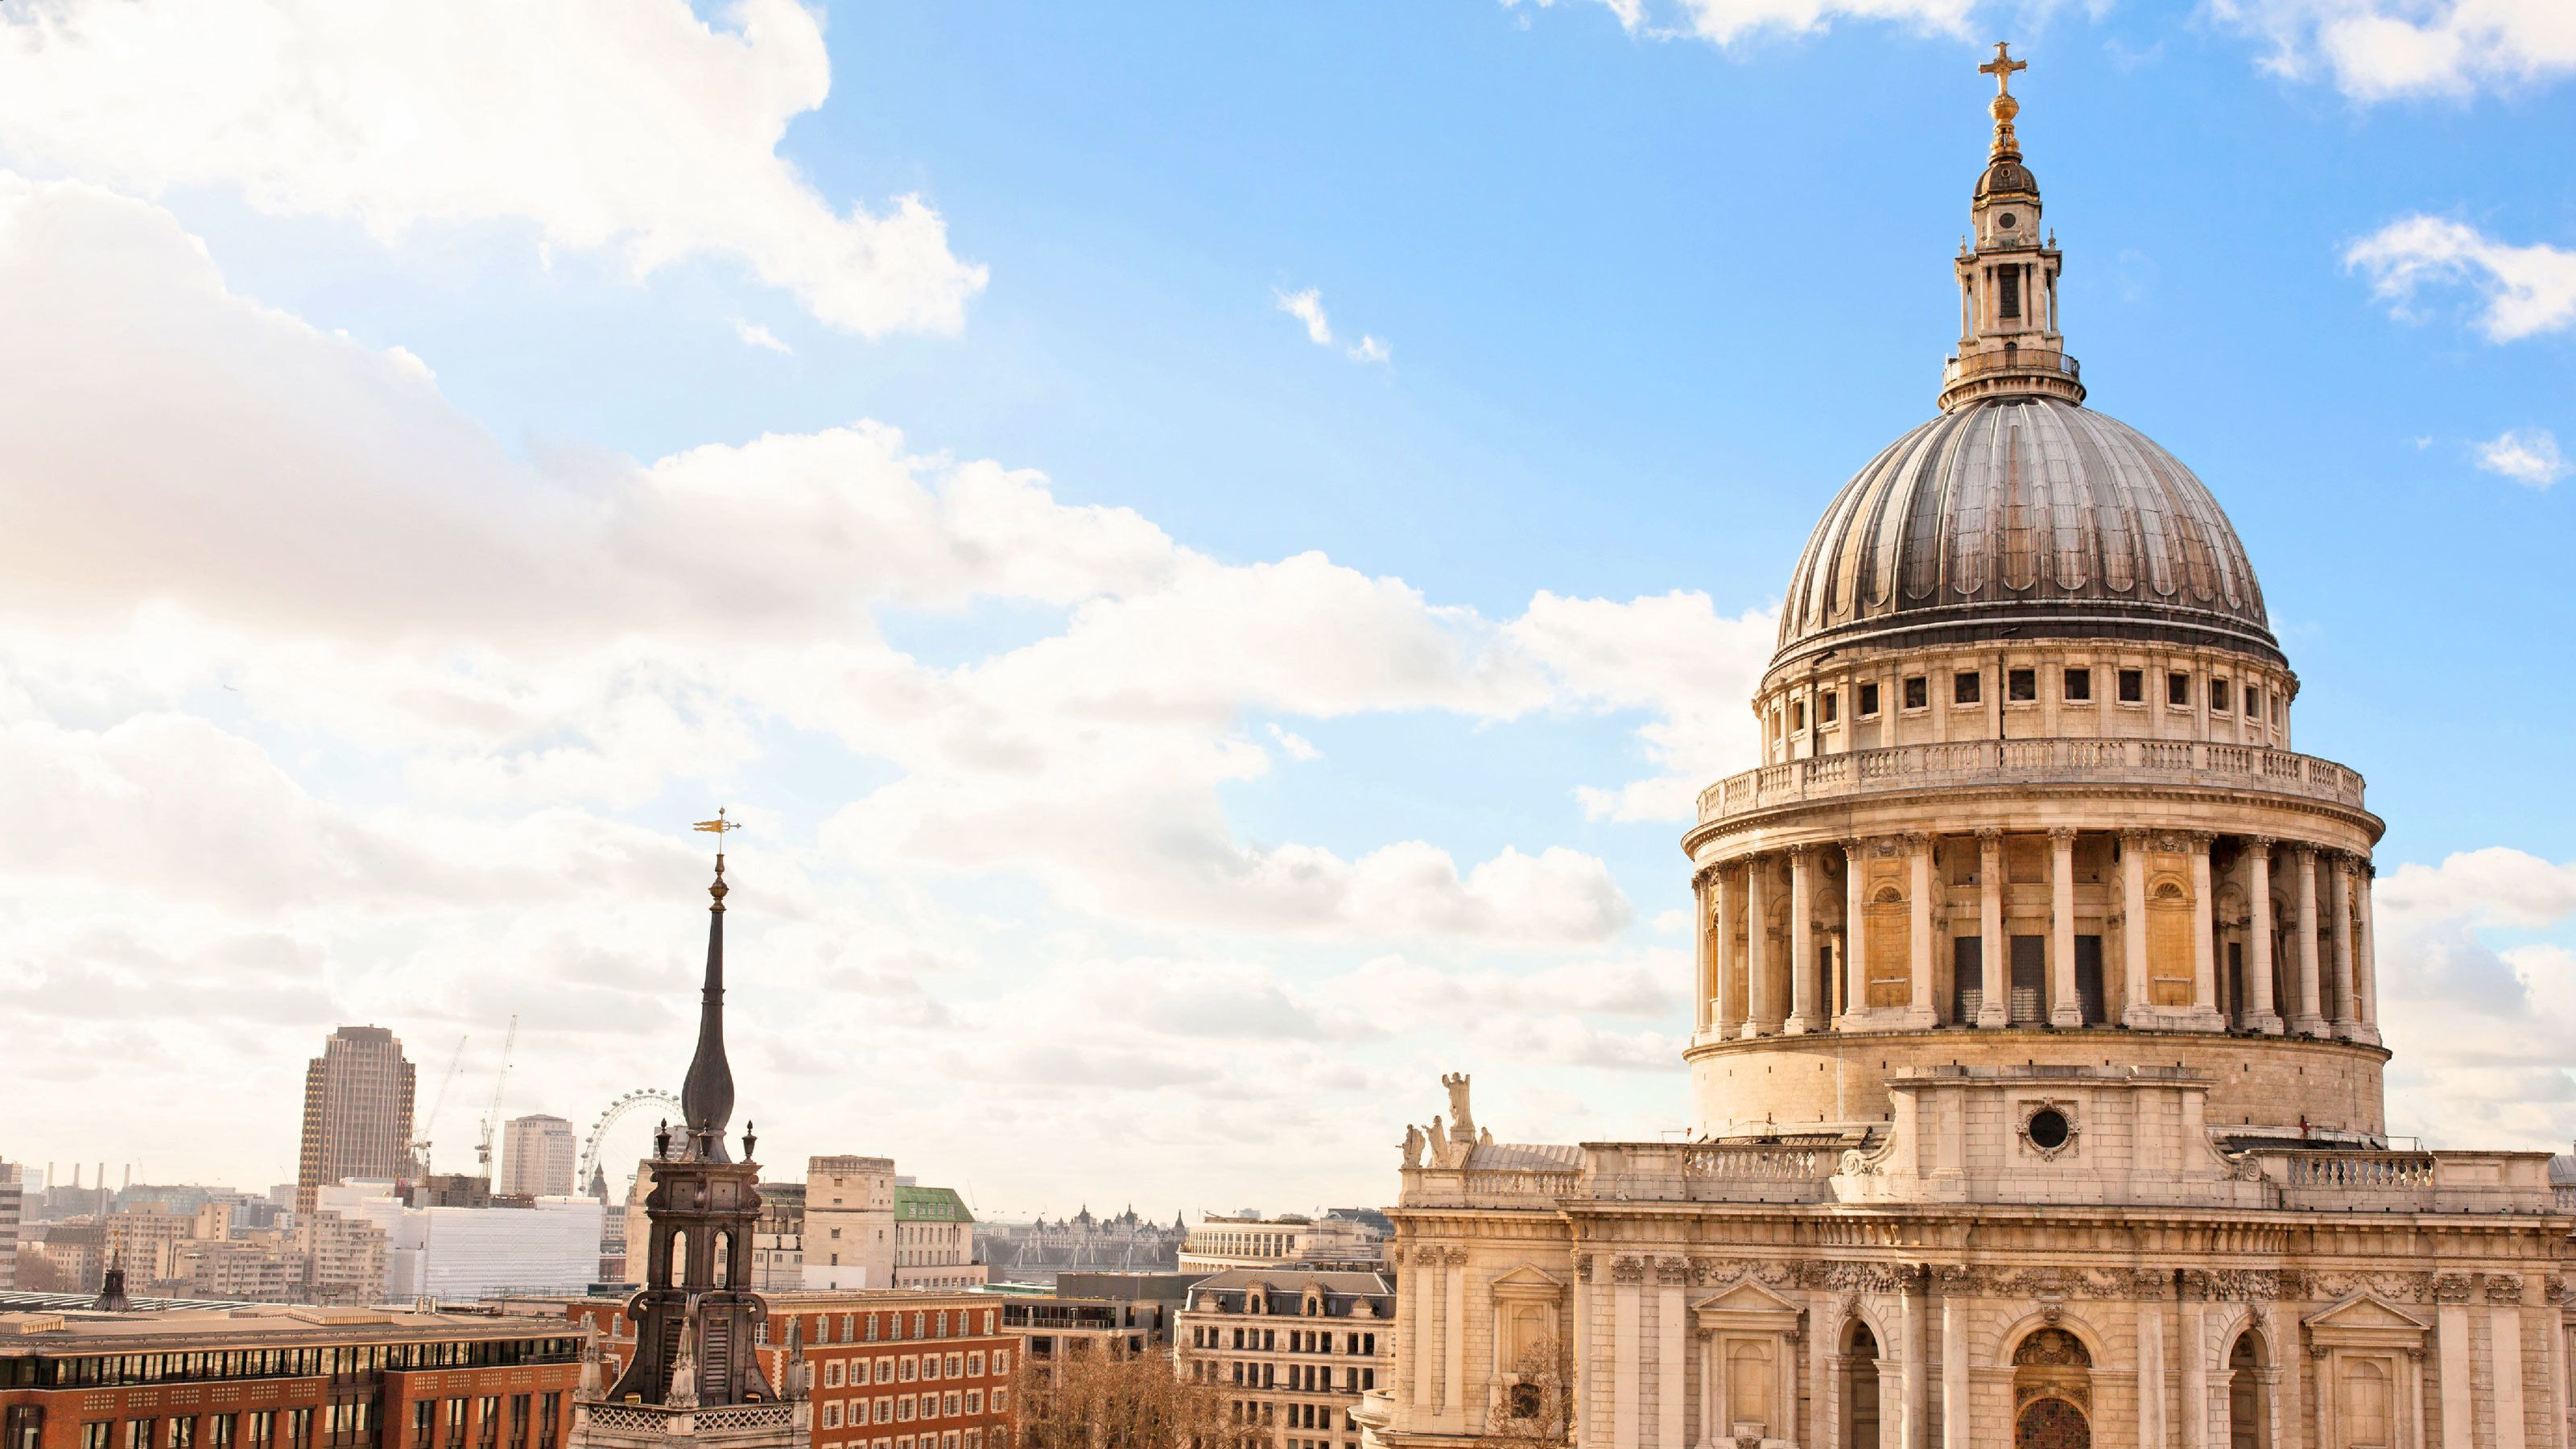 Saint. Paul's Cathedral in London